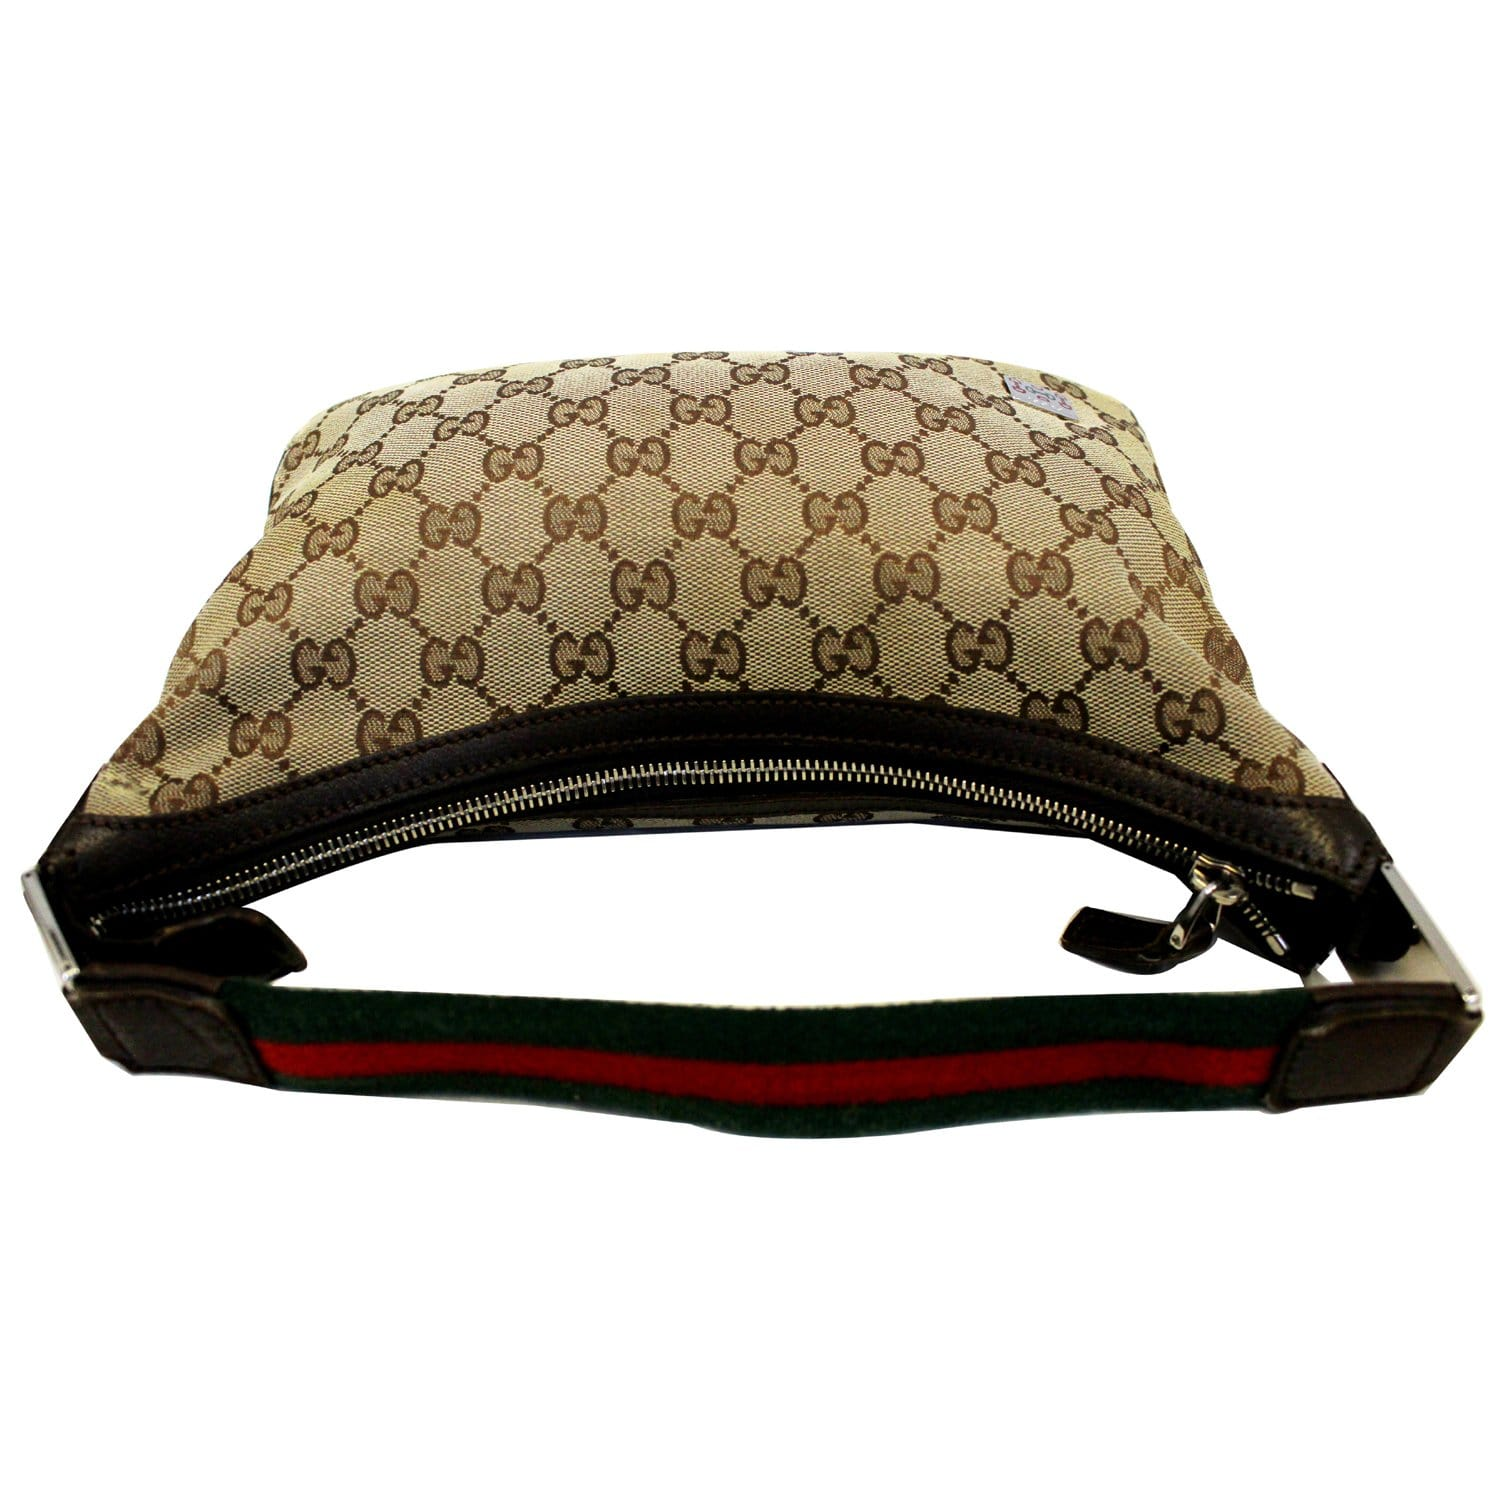 5bfae96150c3dd GUCCI GG Canvas Horsebit Hobo Bag Beige